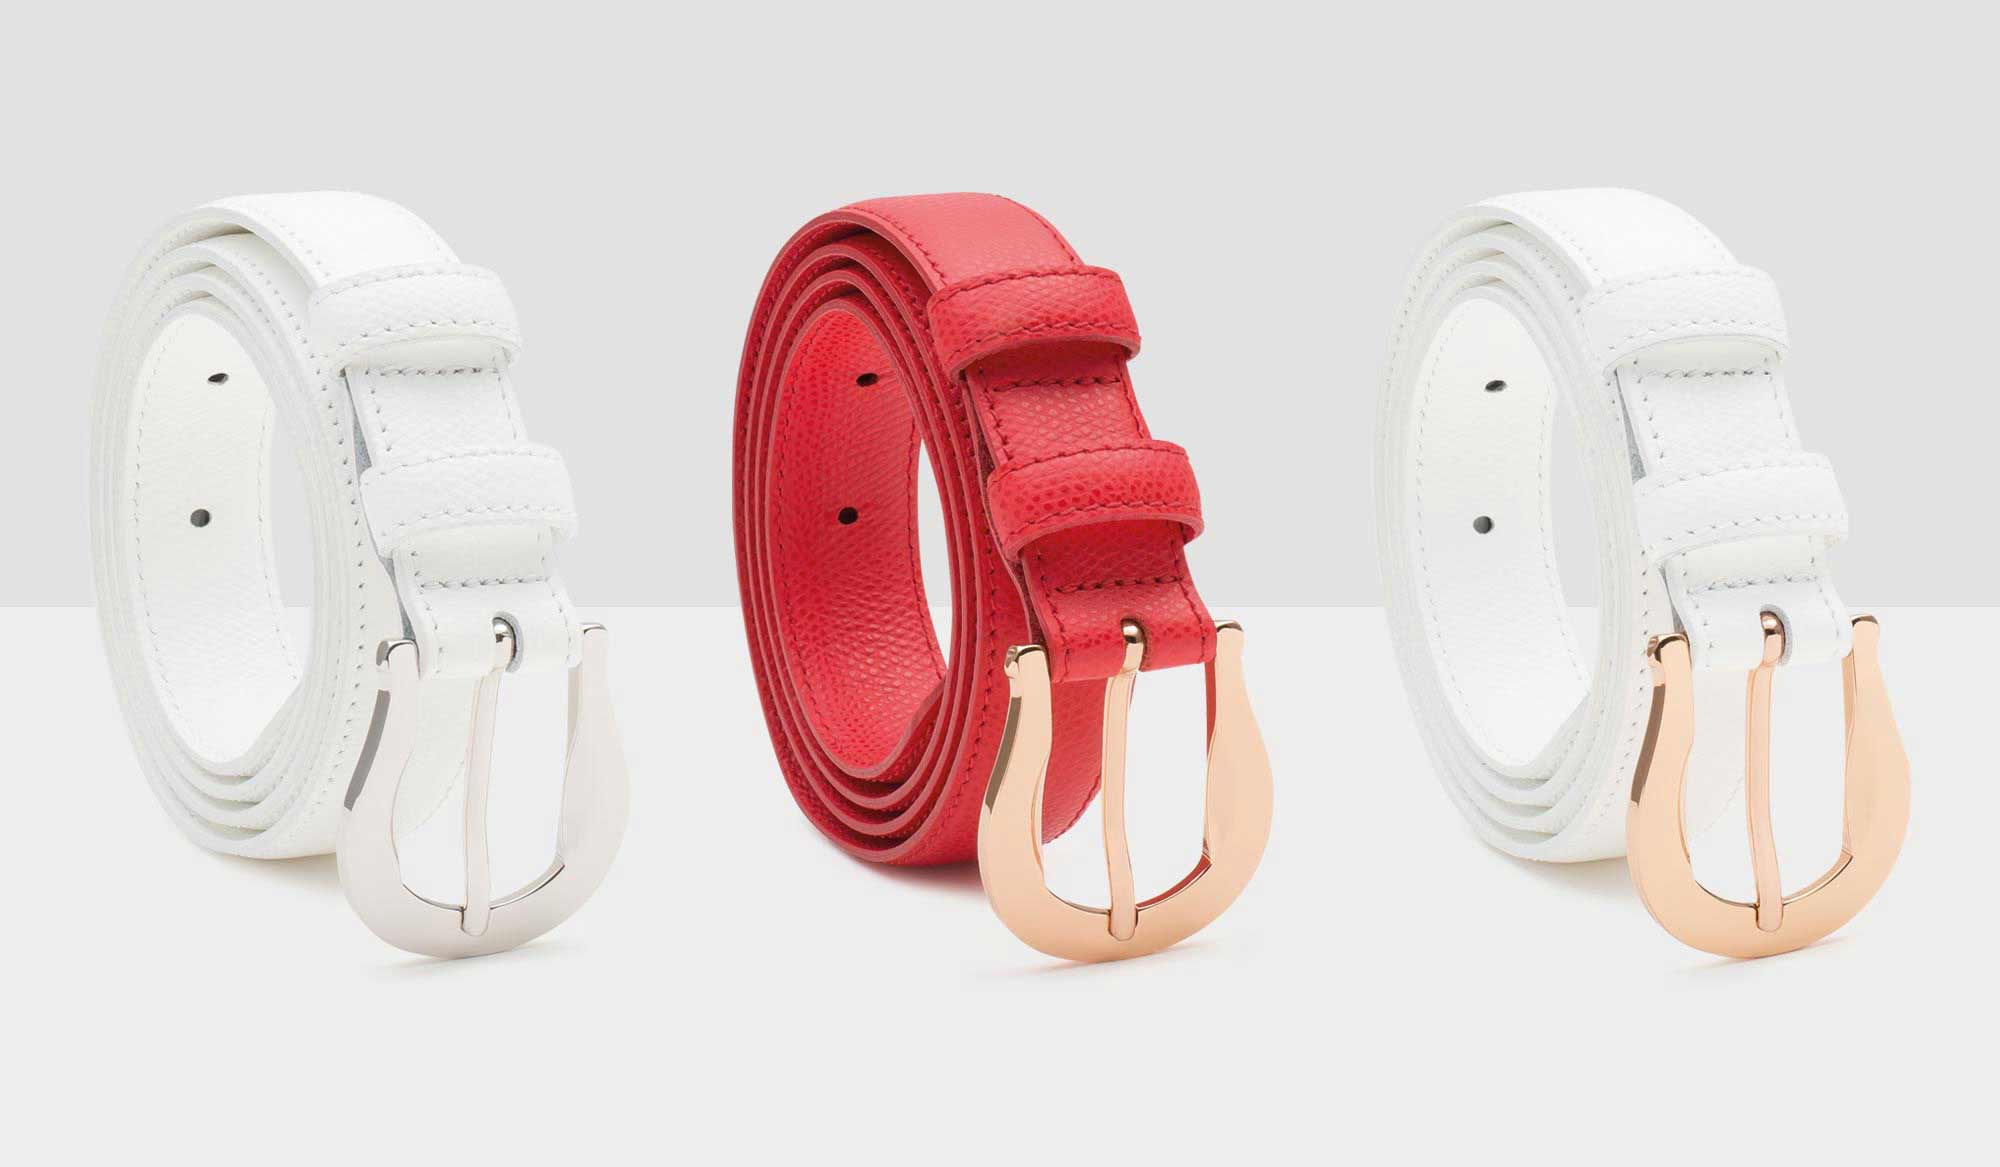 Three of our classic Palmellato leather belts